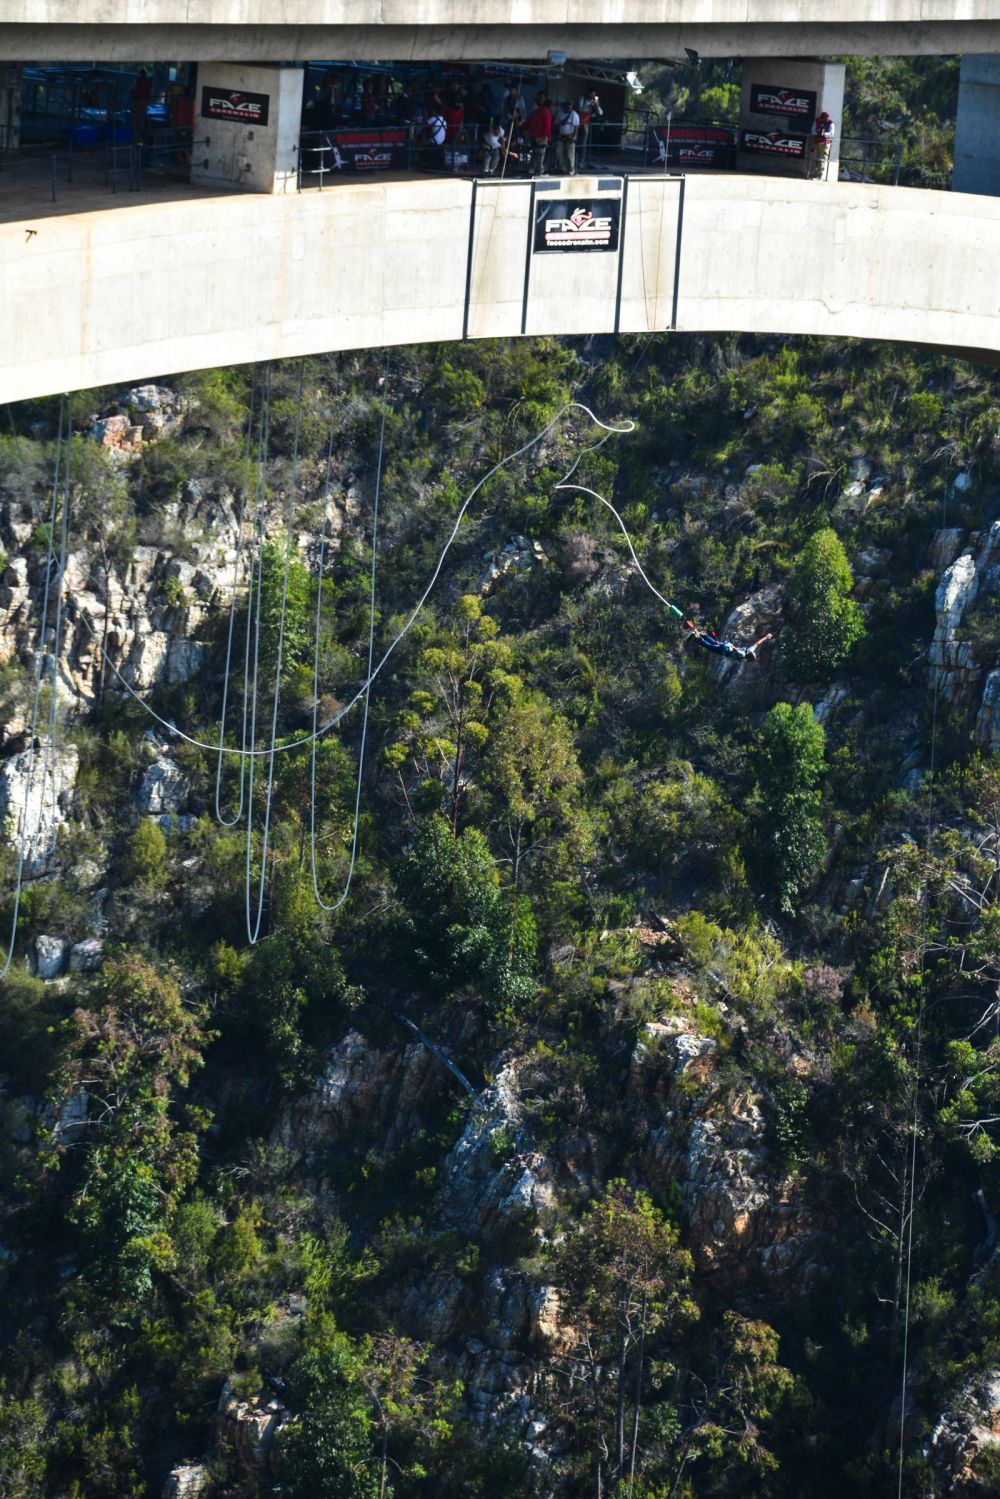 Eastern Cape Adventures In South Africa: Wines, 1,000 Year Old Trees And The Tallest Bungee In The World! (5)